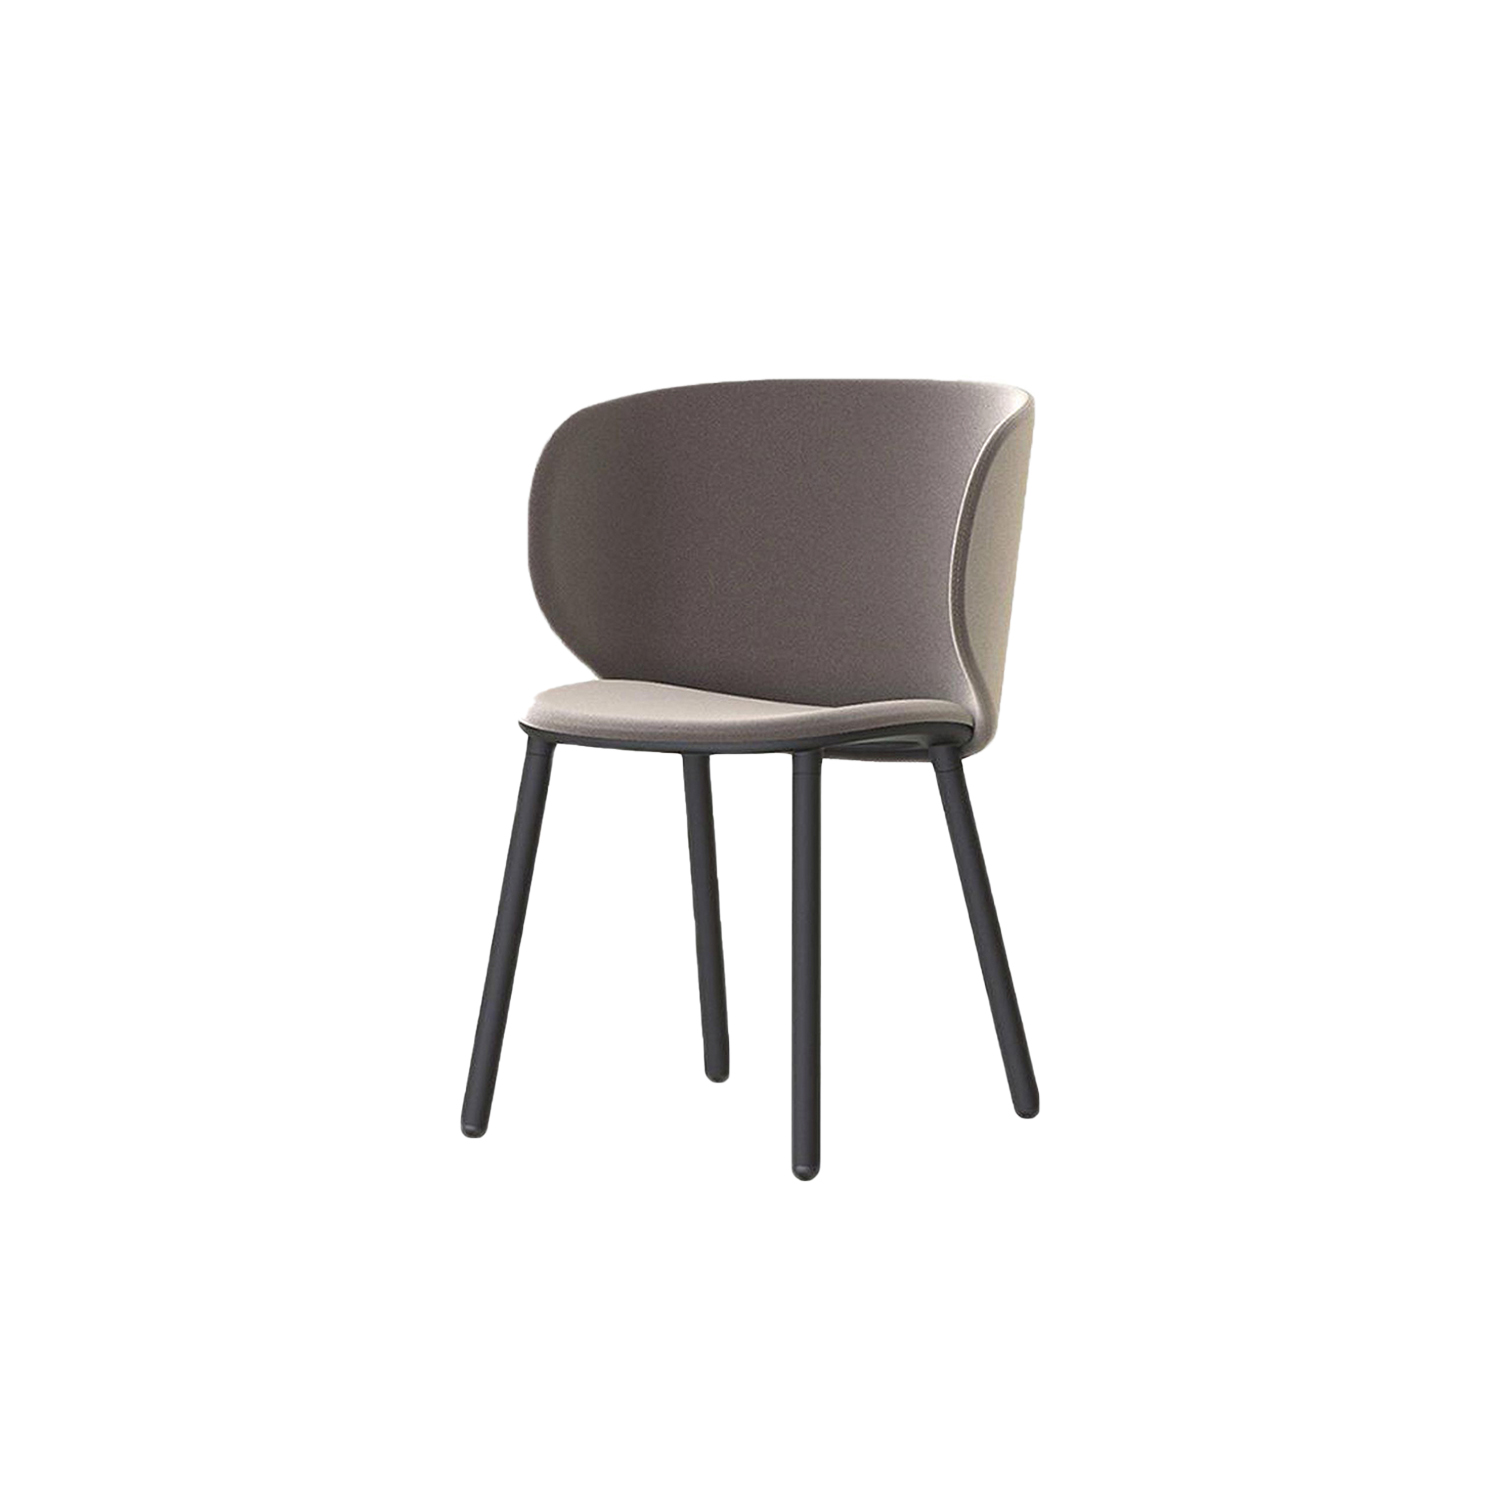 Dua Large Chair with Four Legs - The Berlin-based studio Läufer & Keichel has created a chair for Kristalia with soft, embracing lines. The name recalls the number two, which recurs throughout the design project starting with the two elliptical surfaces of the seat and backrest, which sensually revolves around the seat. Available with a slide-frame base or with four solid wood legs, the chair and armchair can be upholstered with the fabrics and leather in the catalogue, with the option of different upholstery for the seat and backrest to create contrasting or matching combinations. A range of materials, colours and finishes are available in a number of combinations. Prices may vary. Please enquire for full details. | Matter of Stuff